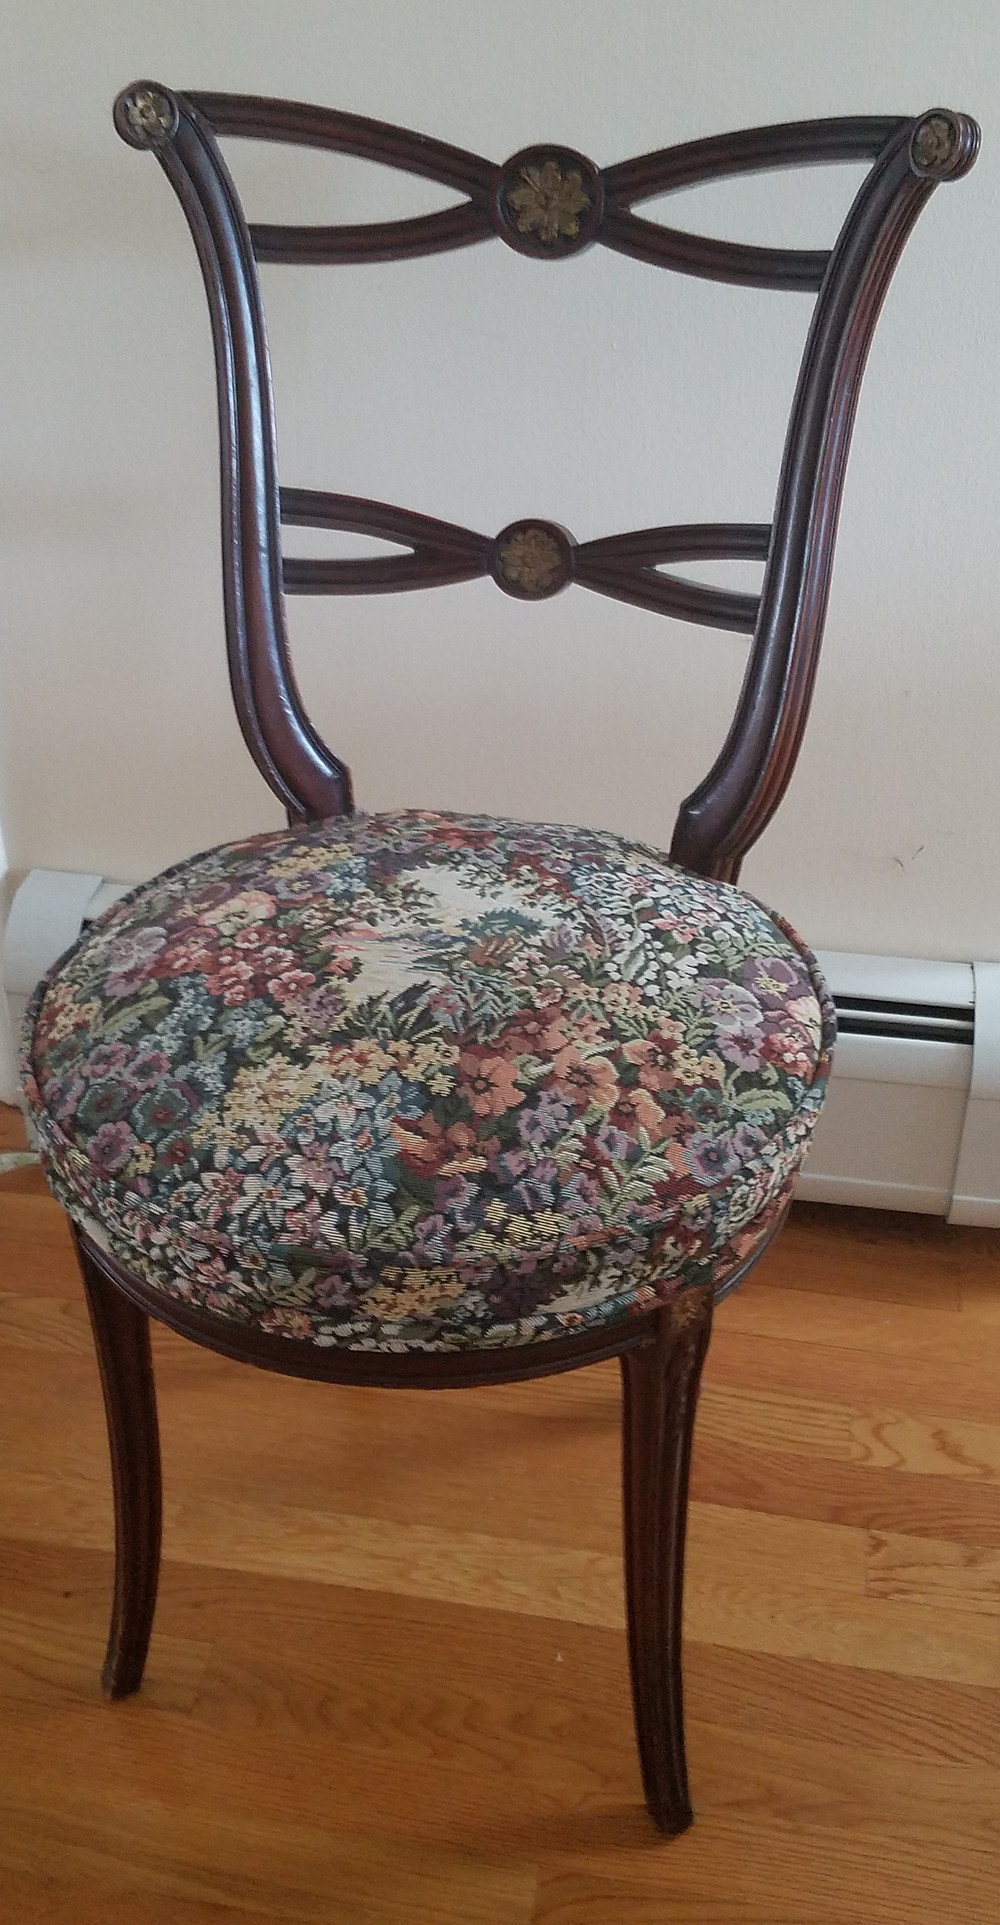 Vintage reproduction wood chair, circa 1940's